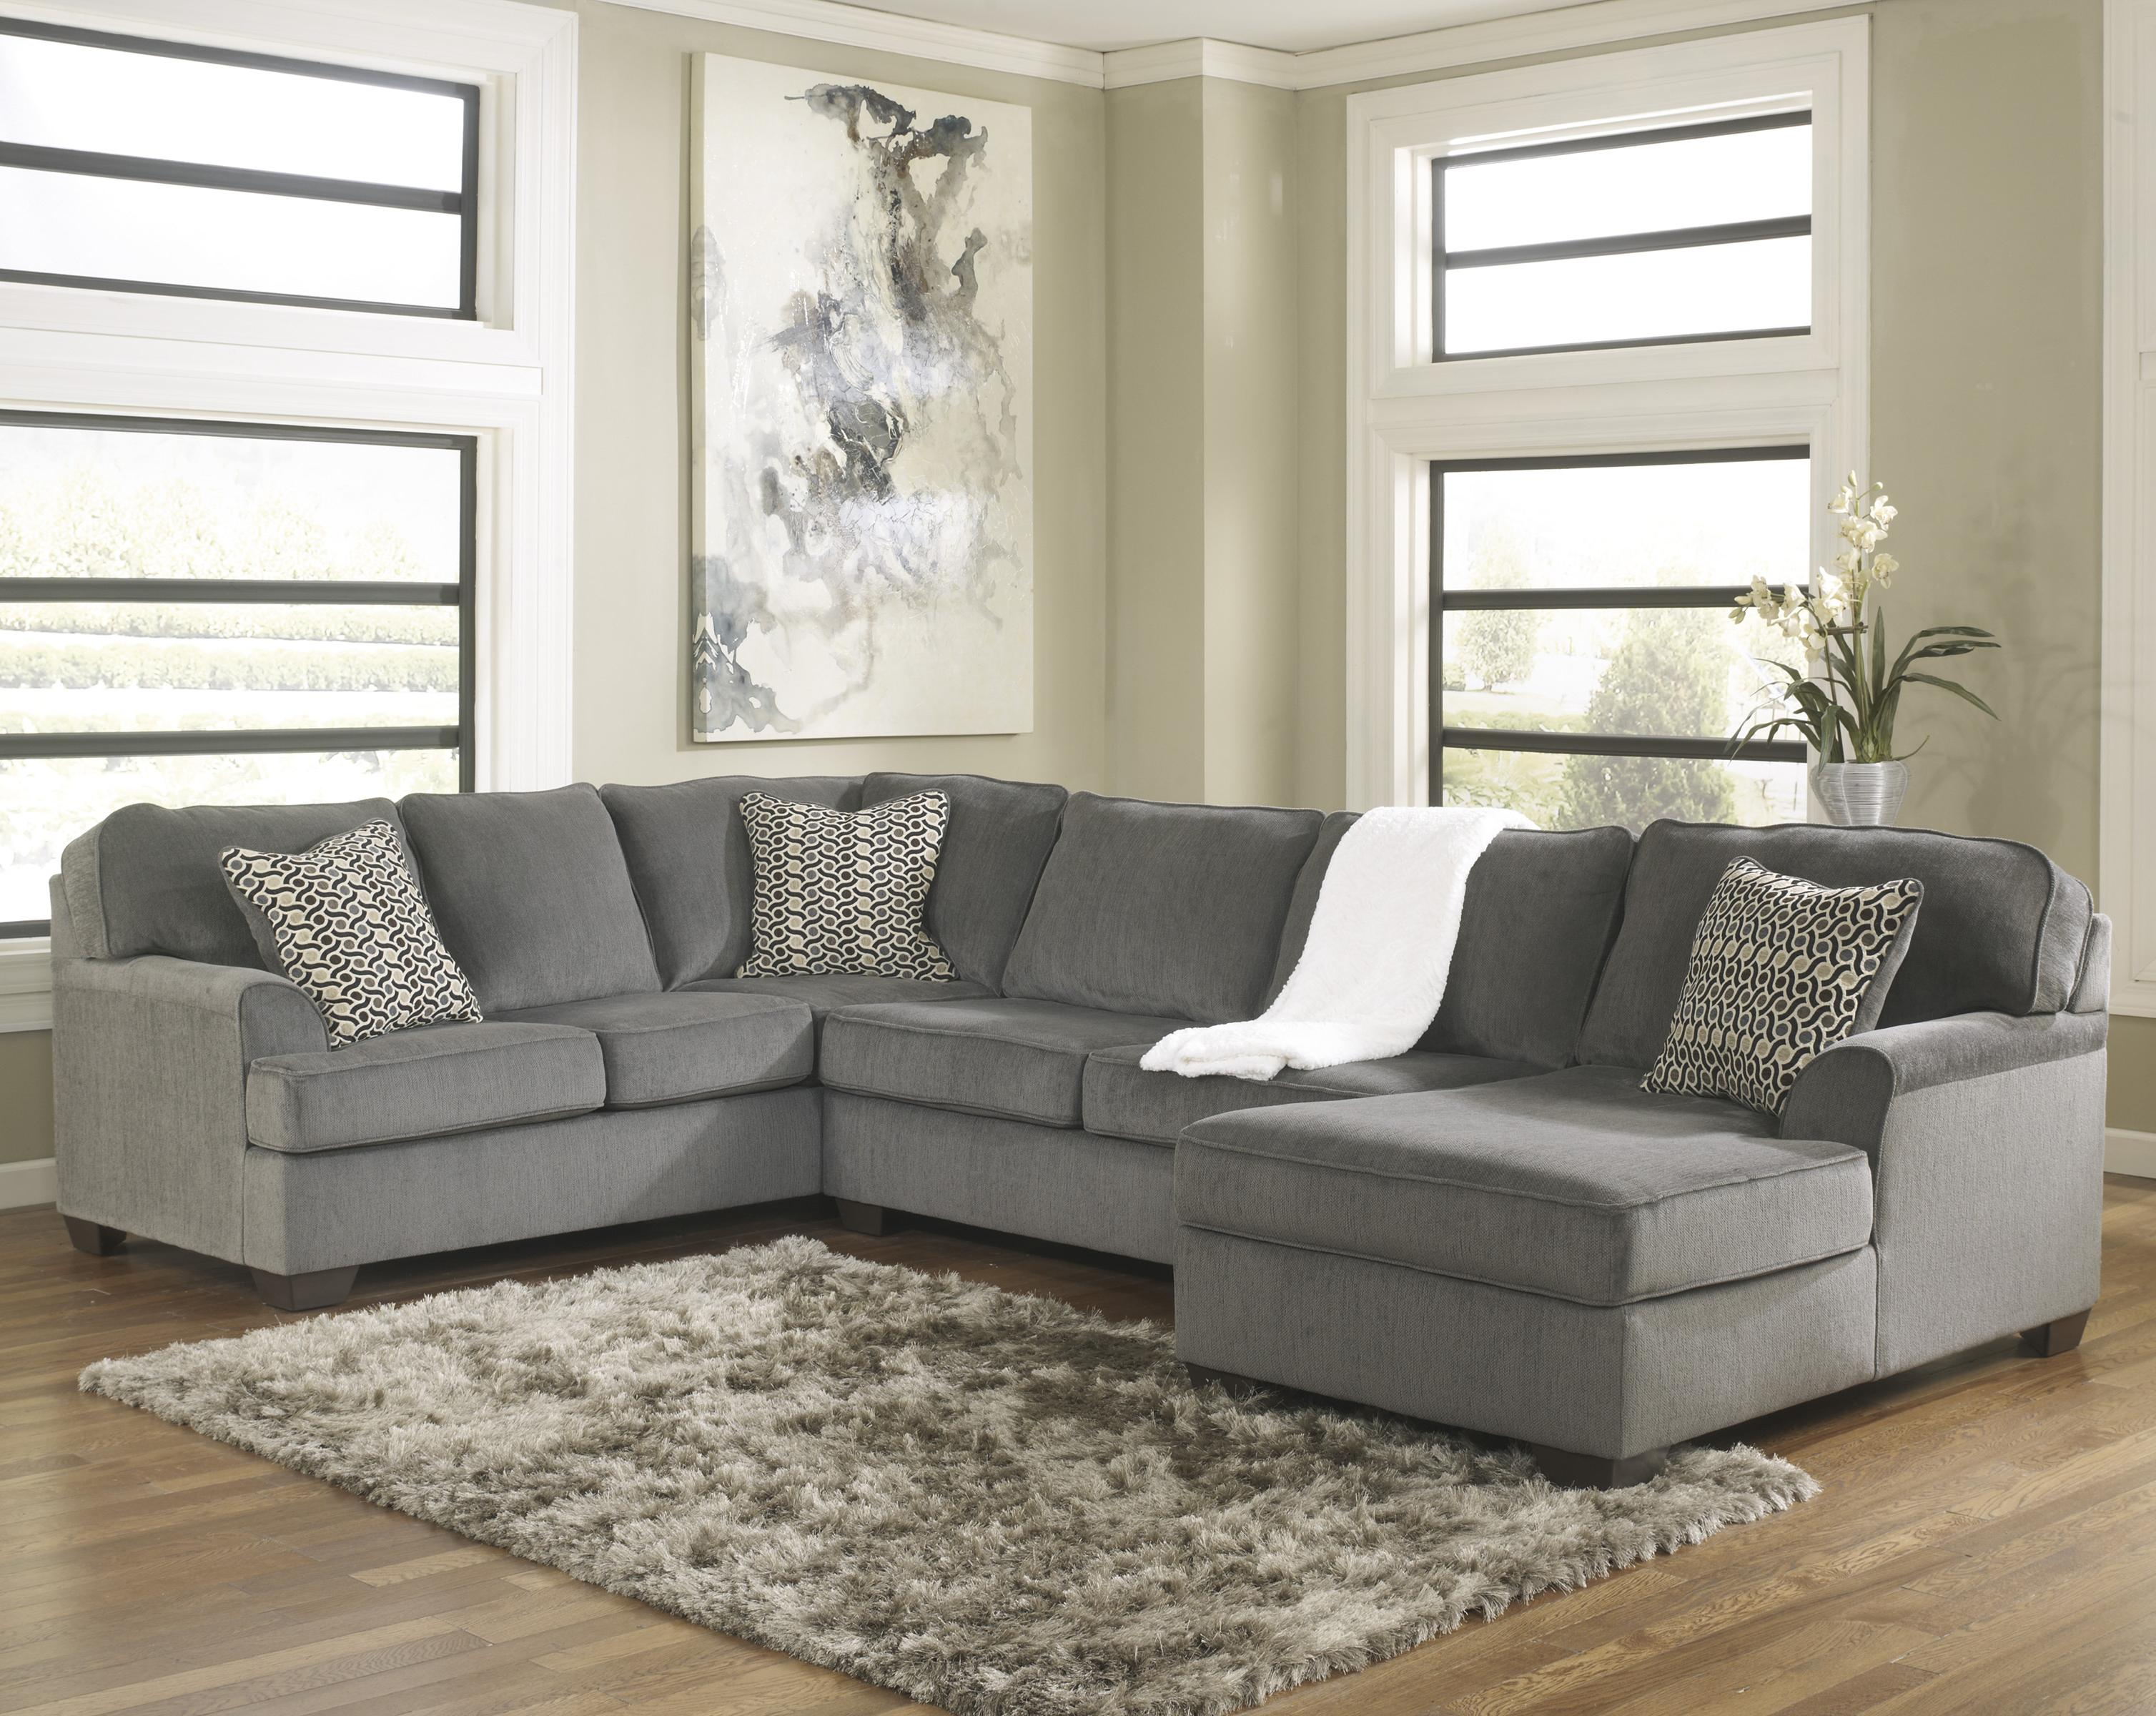 Ashley Furniture Loric - Smoke Contemporary 3-Piece Sectional with Chaise - Item Number : 3 piece sectional sofa sale - Sectionals, Sofas & Couches